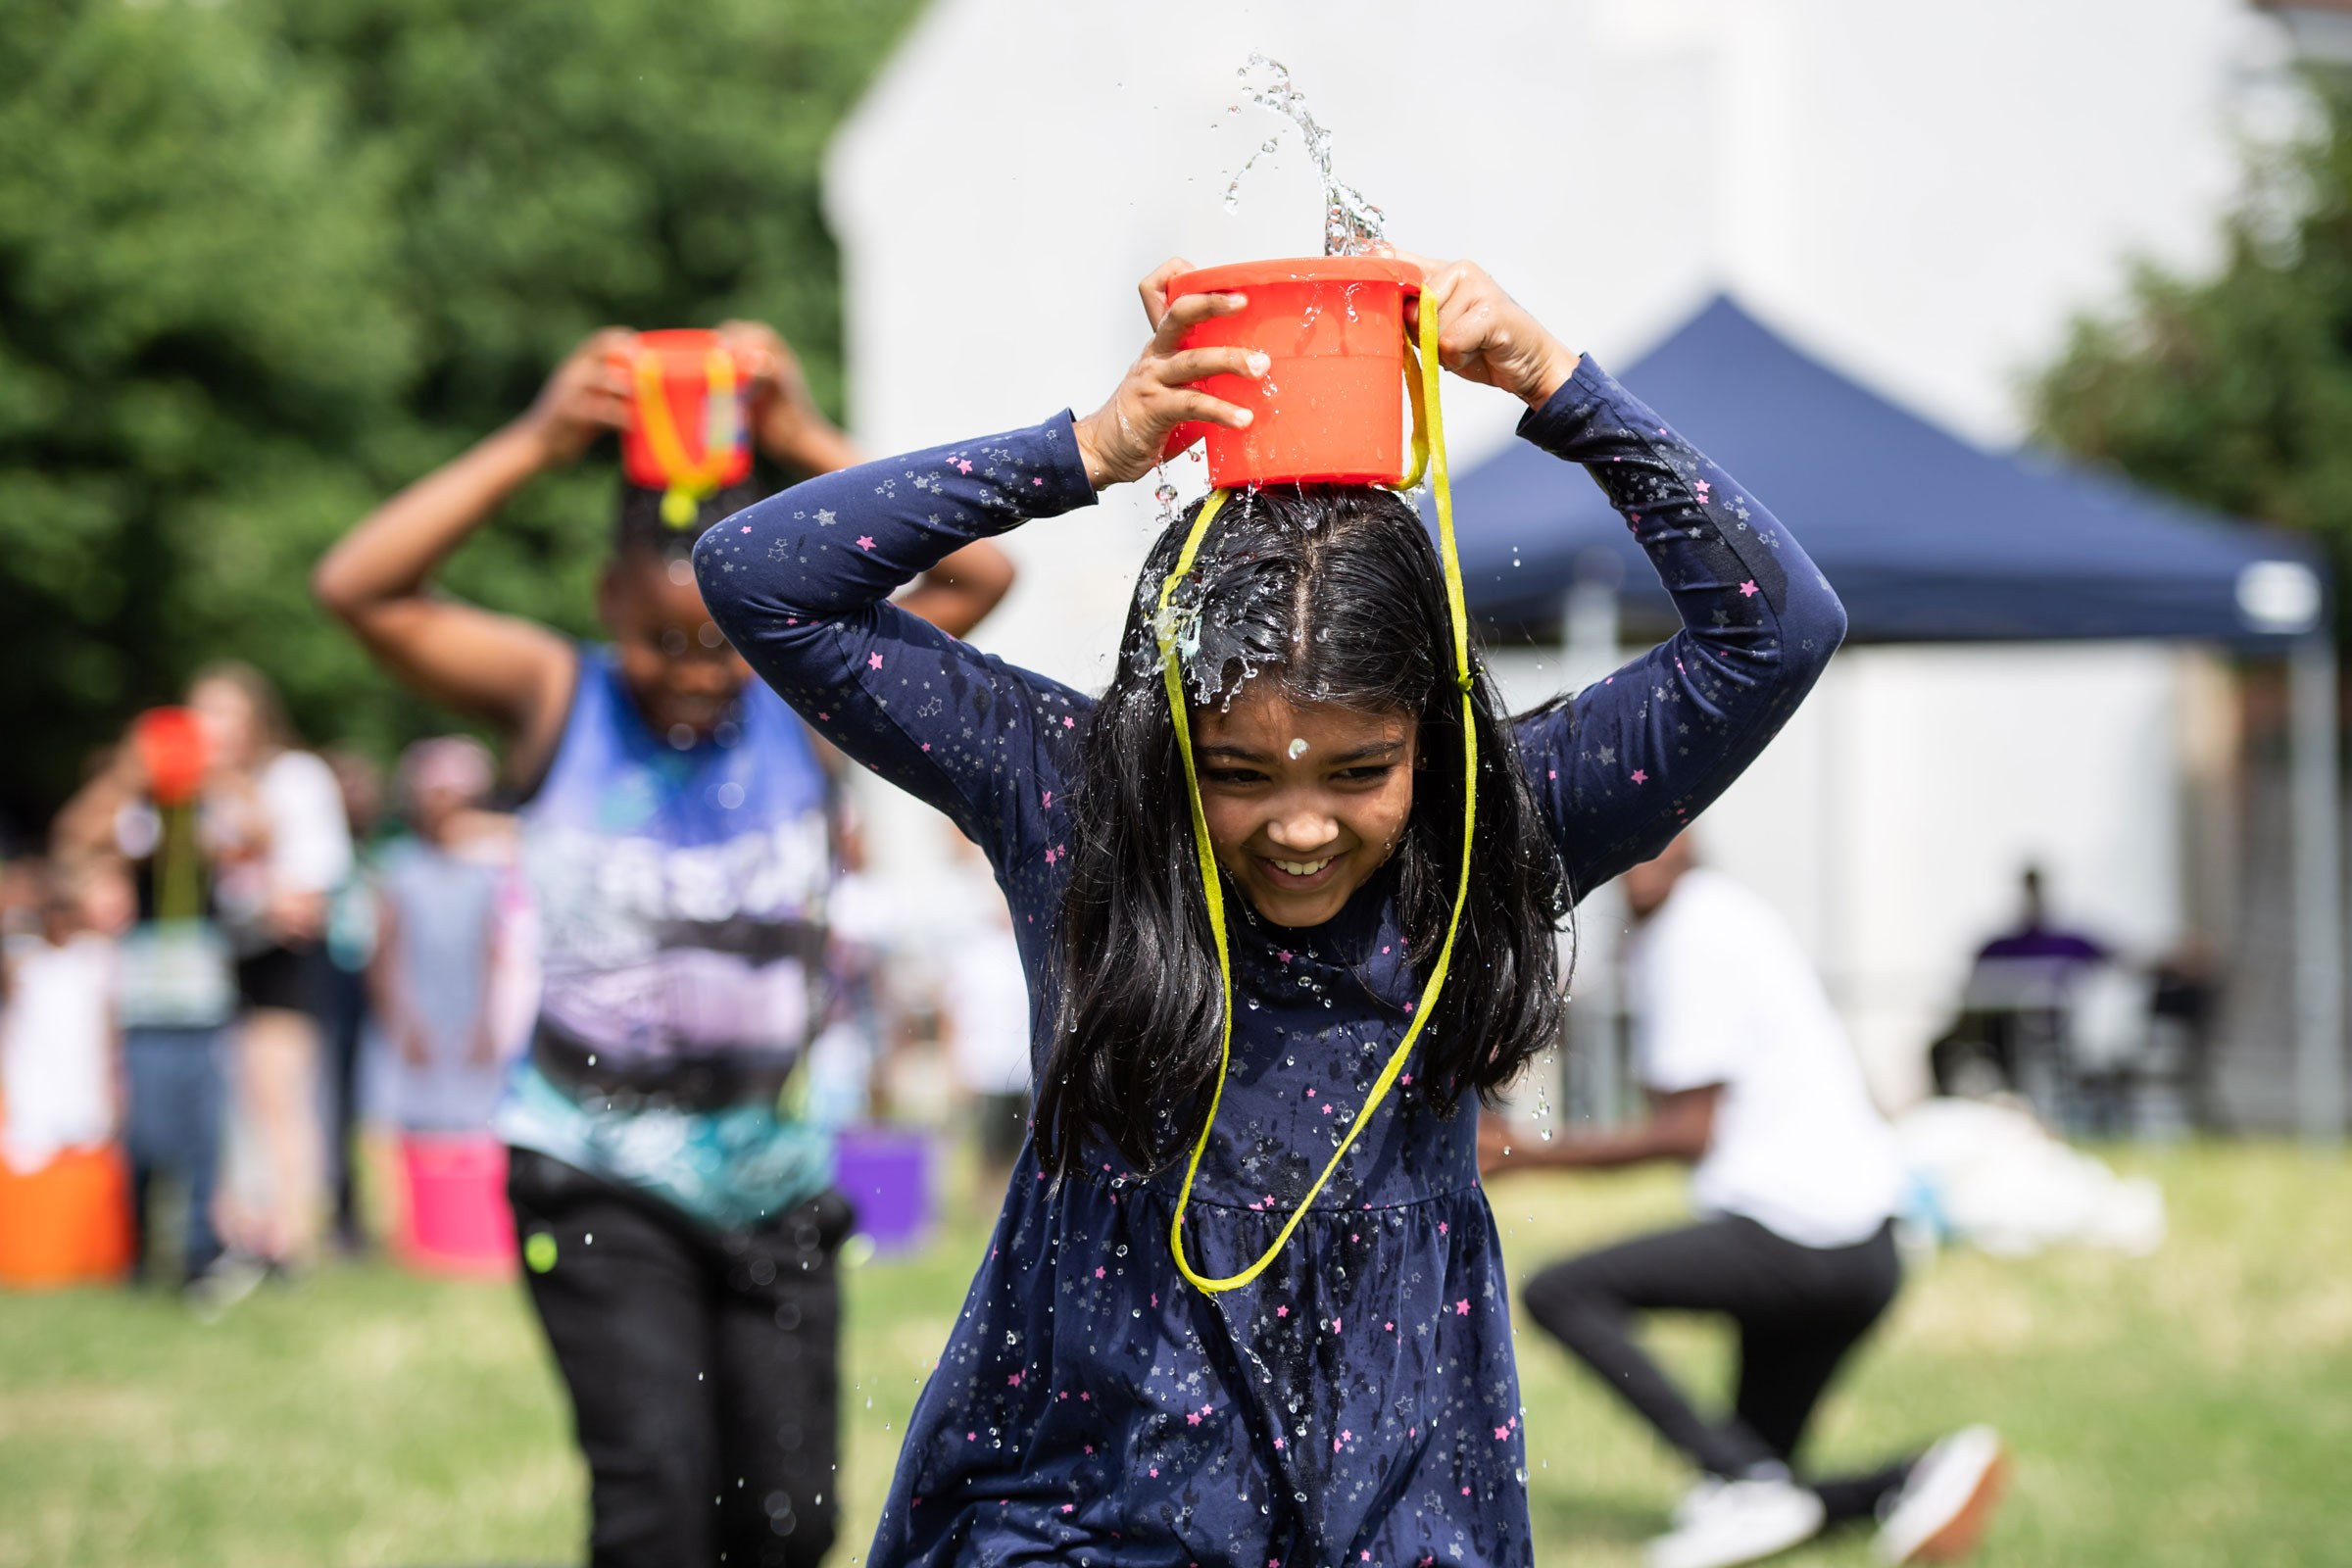 A girl with a bucket of water on her head, laughing